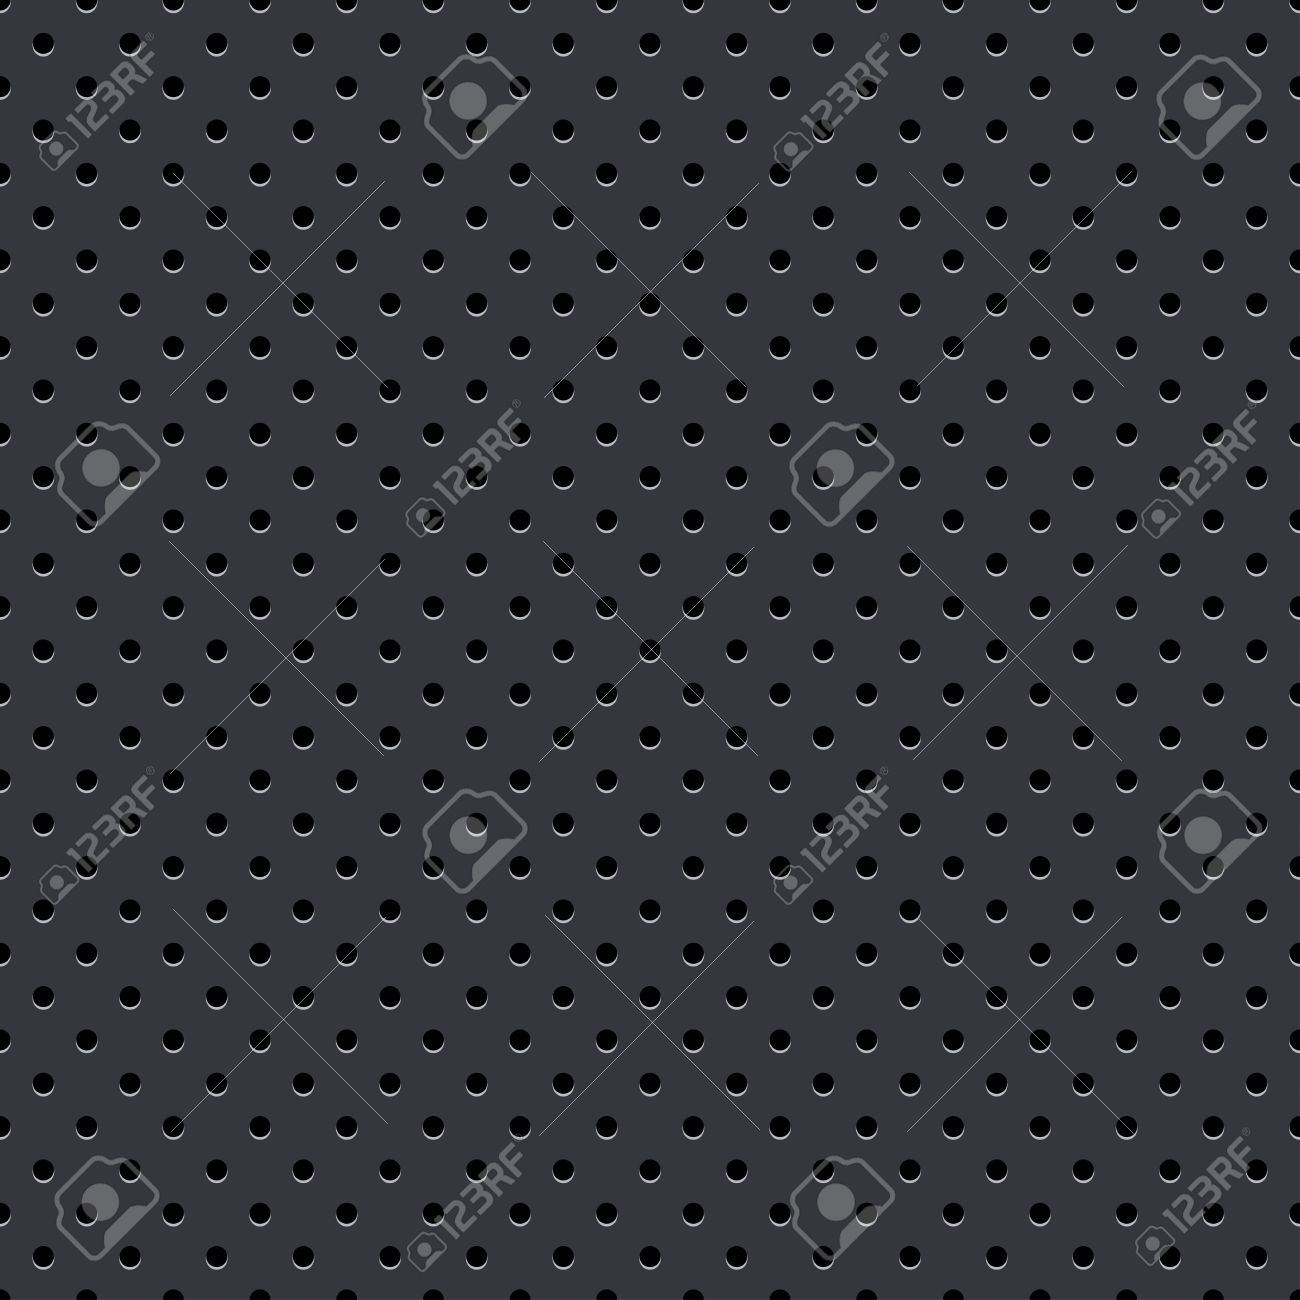 Dark Gray Seamless Perforated Plate Royalty Free Cliparts, Vectors.